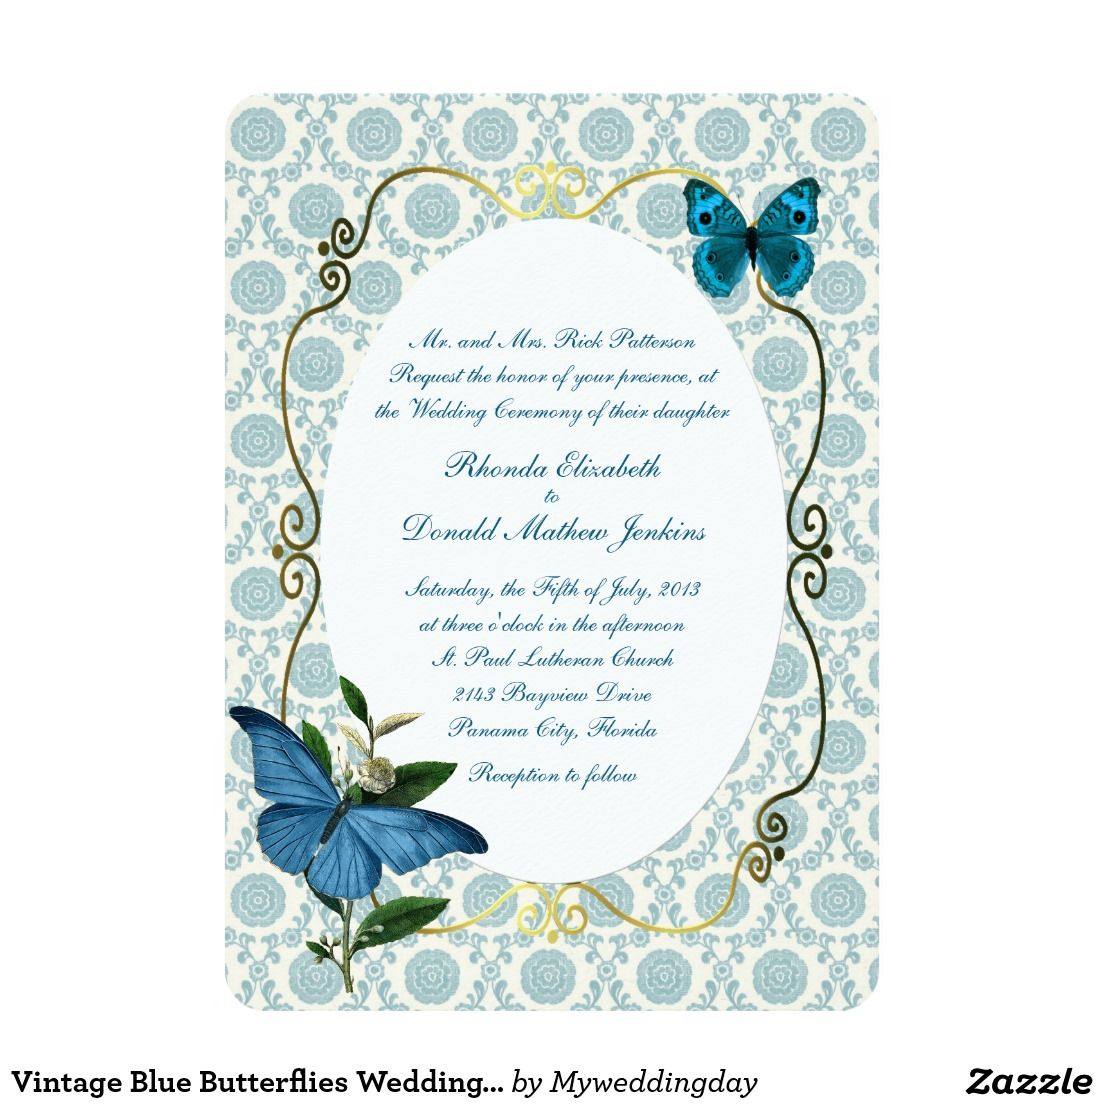 Vintage Blue Butterflies Wedding Invitation | Blue butterfly ...